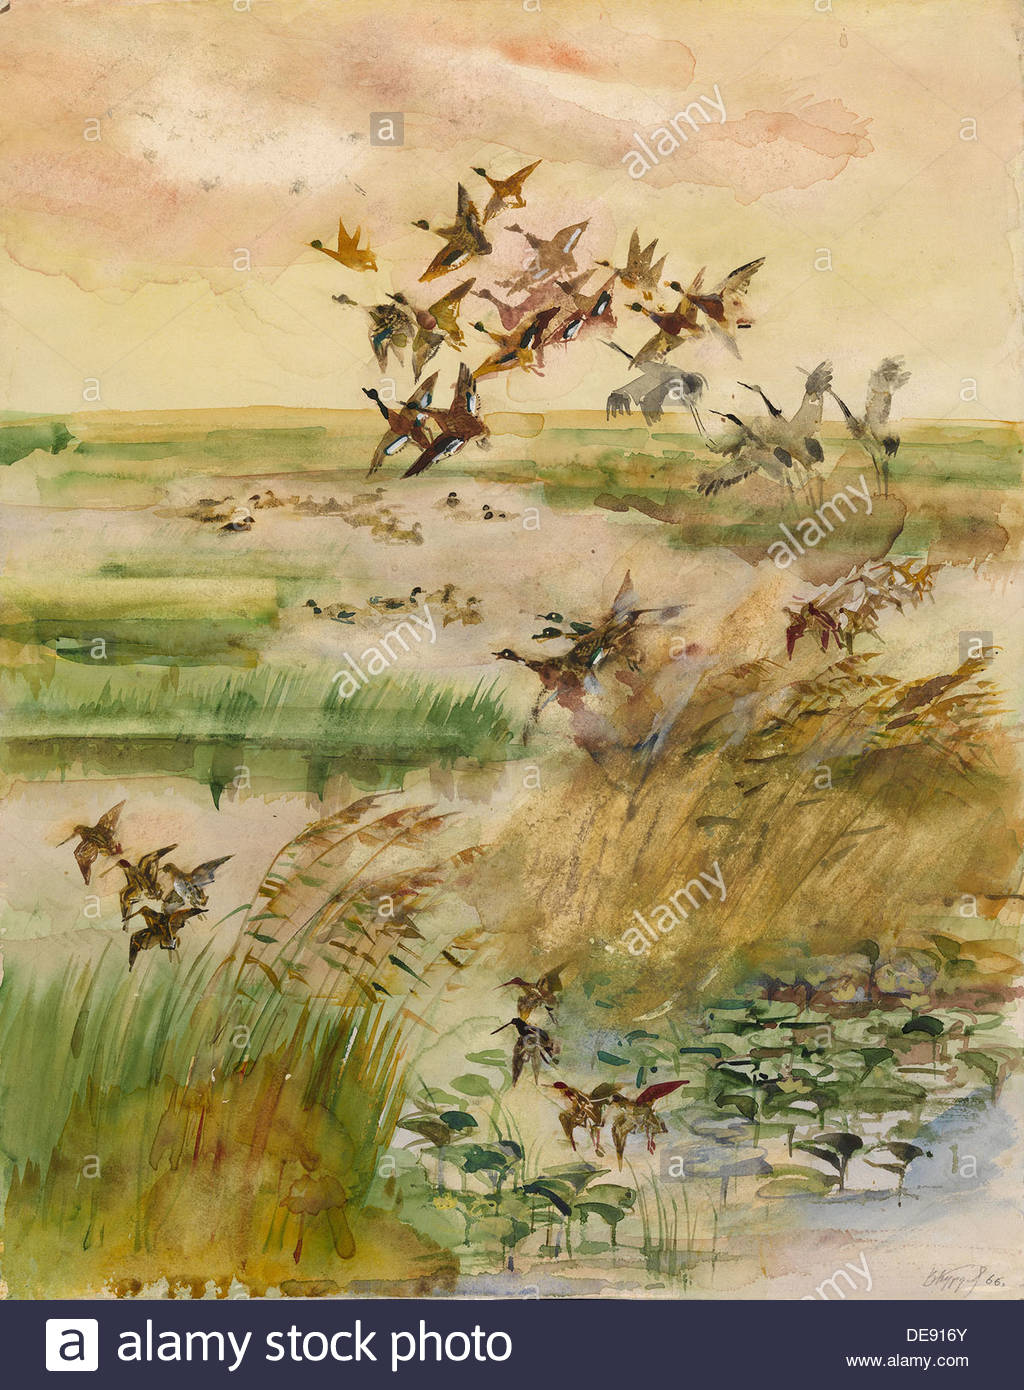 Les canards et les grues, 1966. Artiste : Kurdov, Valentin Ivanovitch (1905-1989) Photo Stock